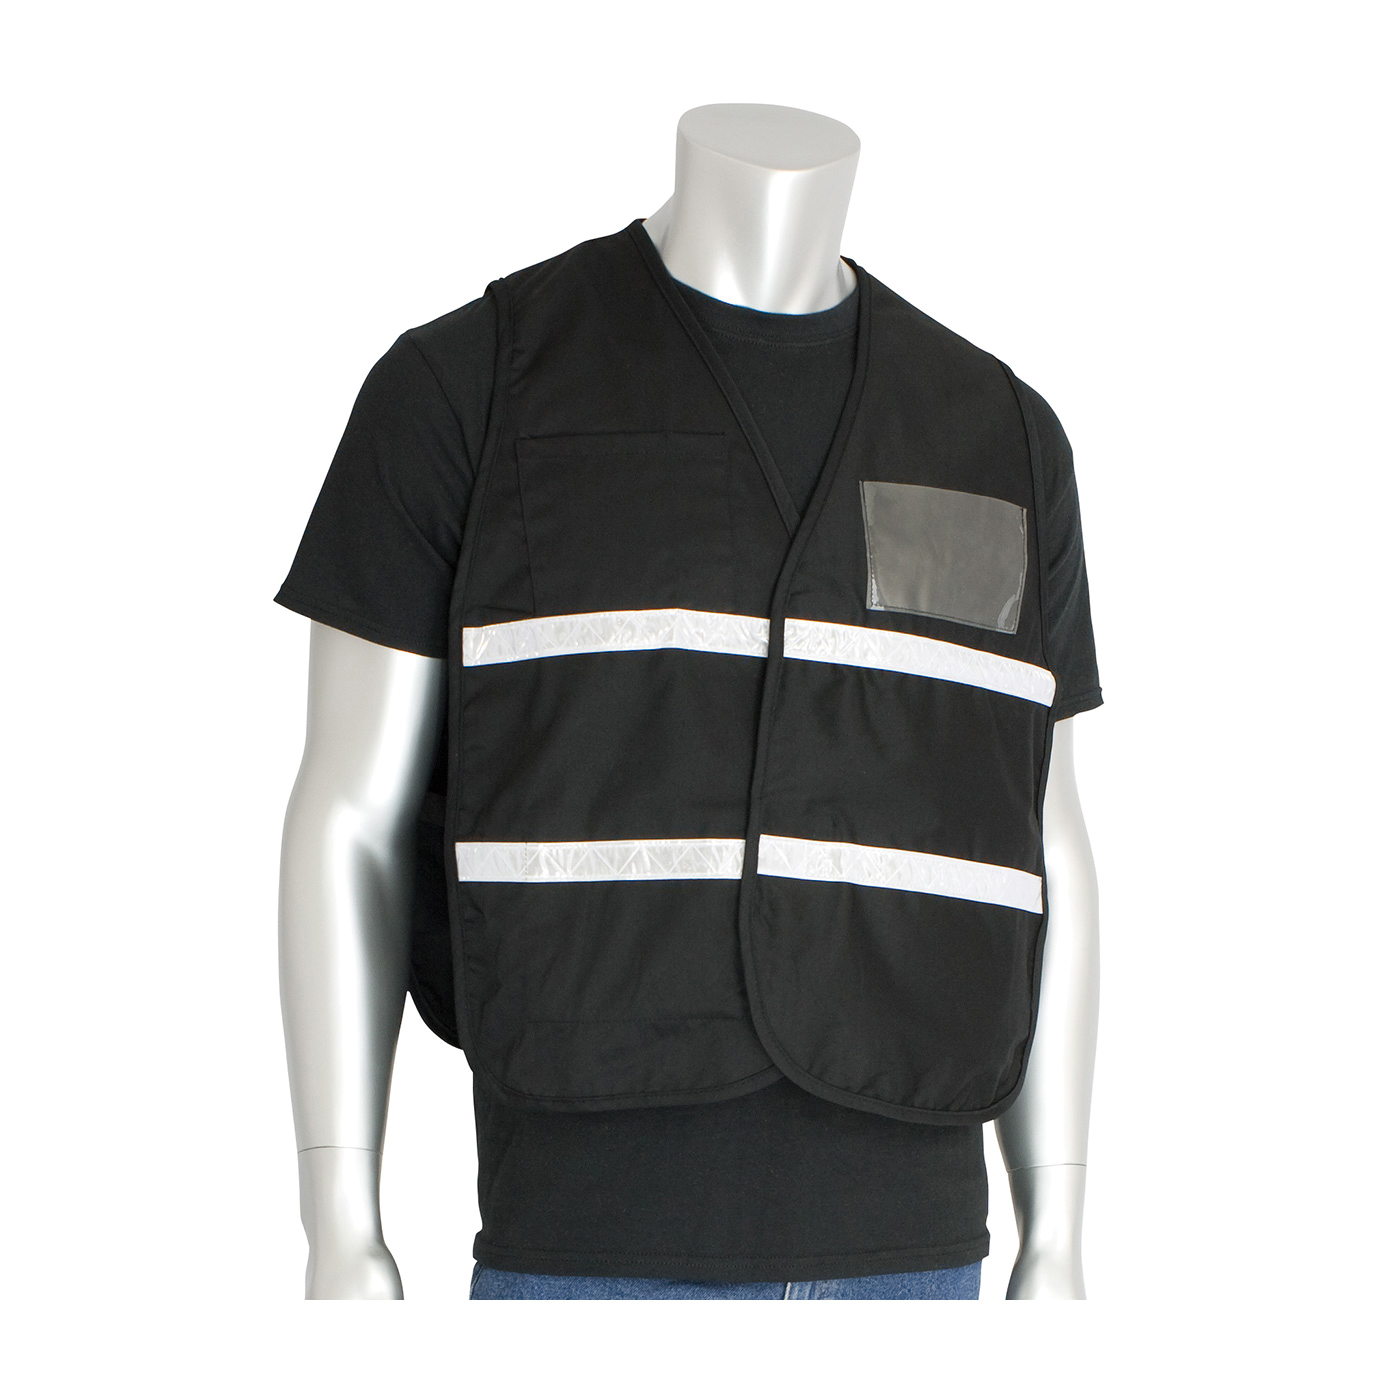 PIP® 300-1502/2X-3X Incident Command Vest, 2XL/3XL, Black, Polyester, 42.1 in Chest, Hook and Loop Closure